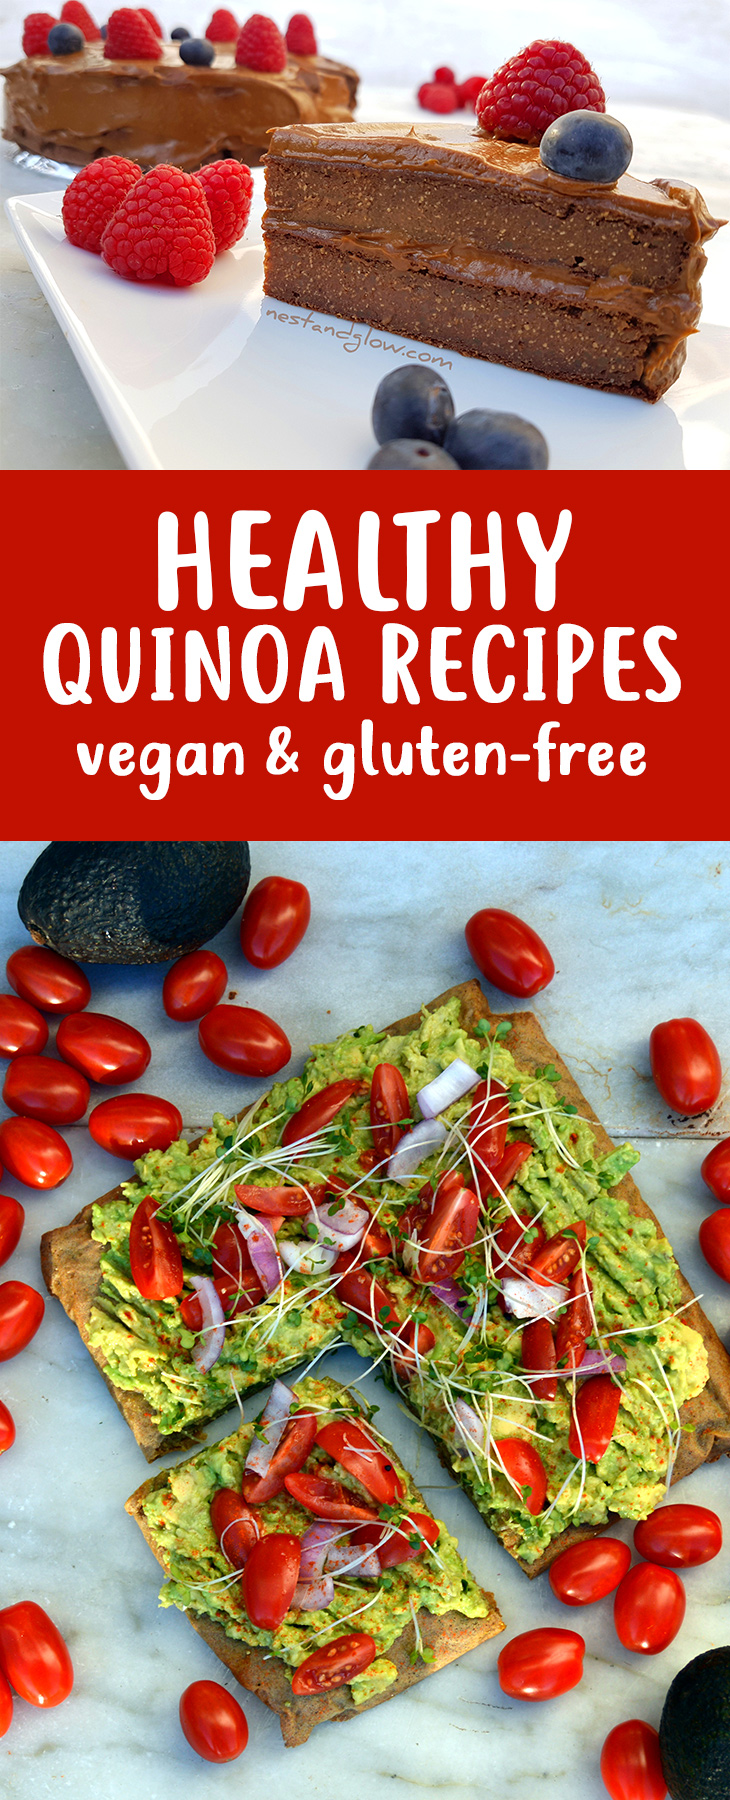 Healthy Quinoa Recipes - vegan & gluten free